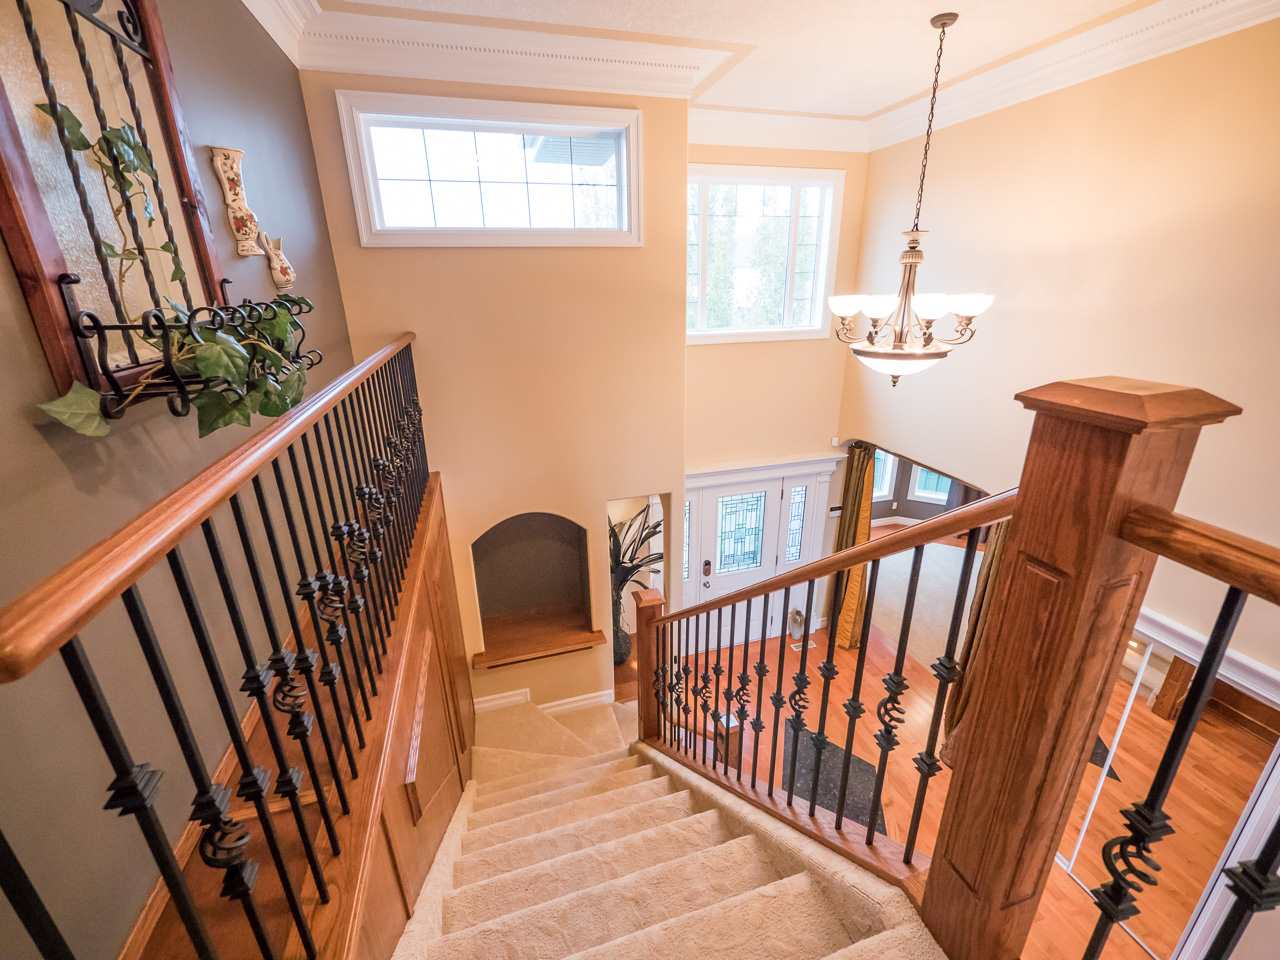 Staircase leading from the grand foyer to the upper level loft.